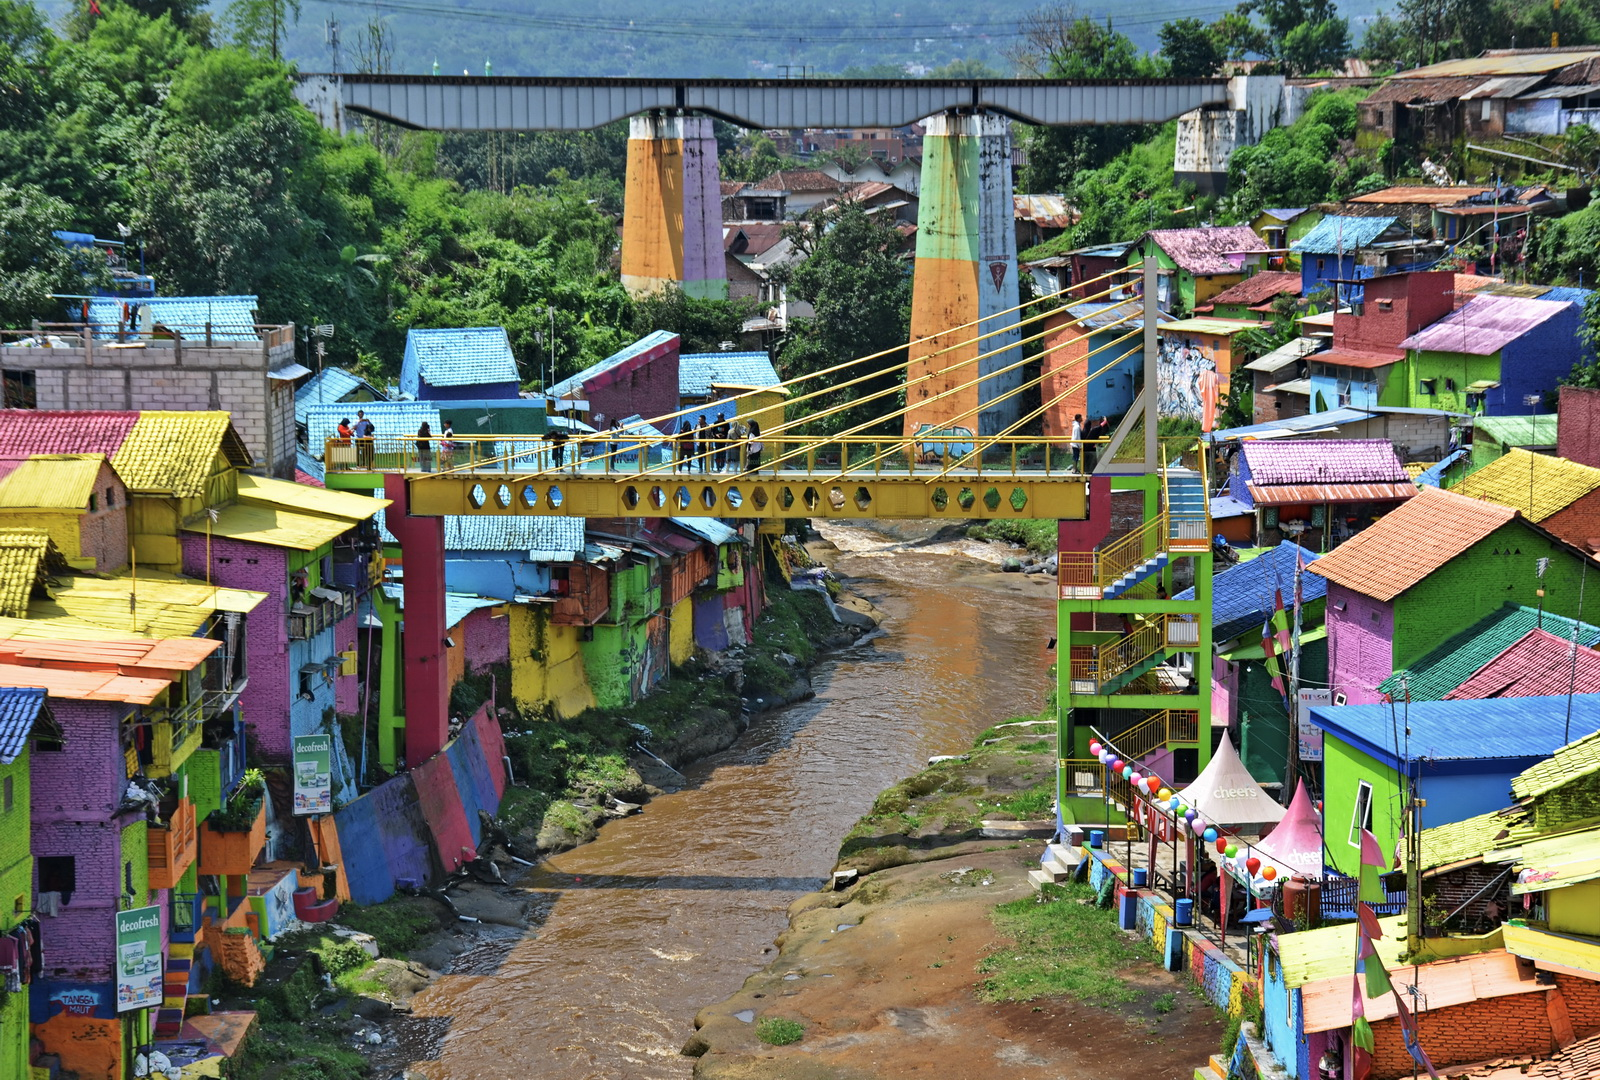 Malang's Rainbow Village, East Java, Indonesia